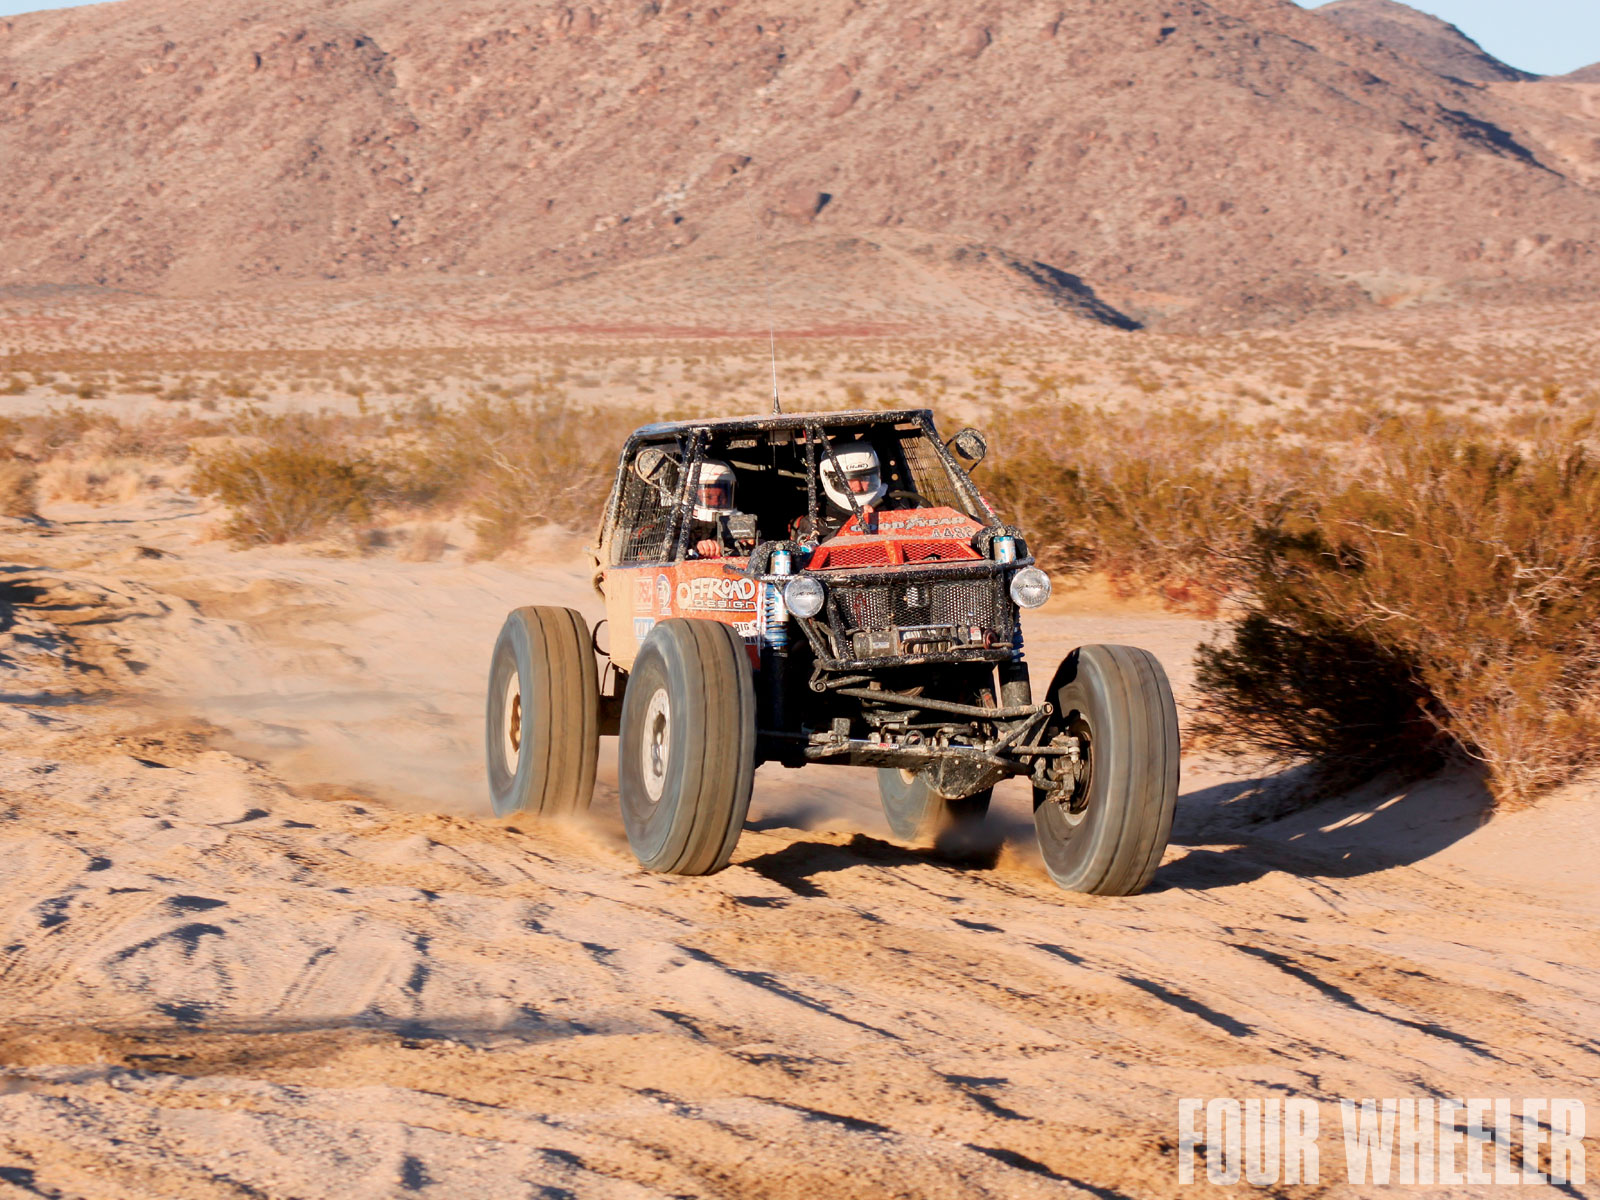 129 1101 33 o+129 1101 kings of the desert suspension secrets+dune buggy race